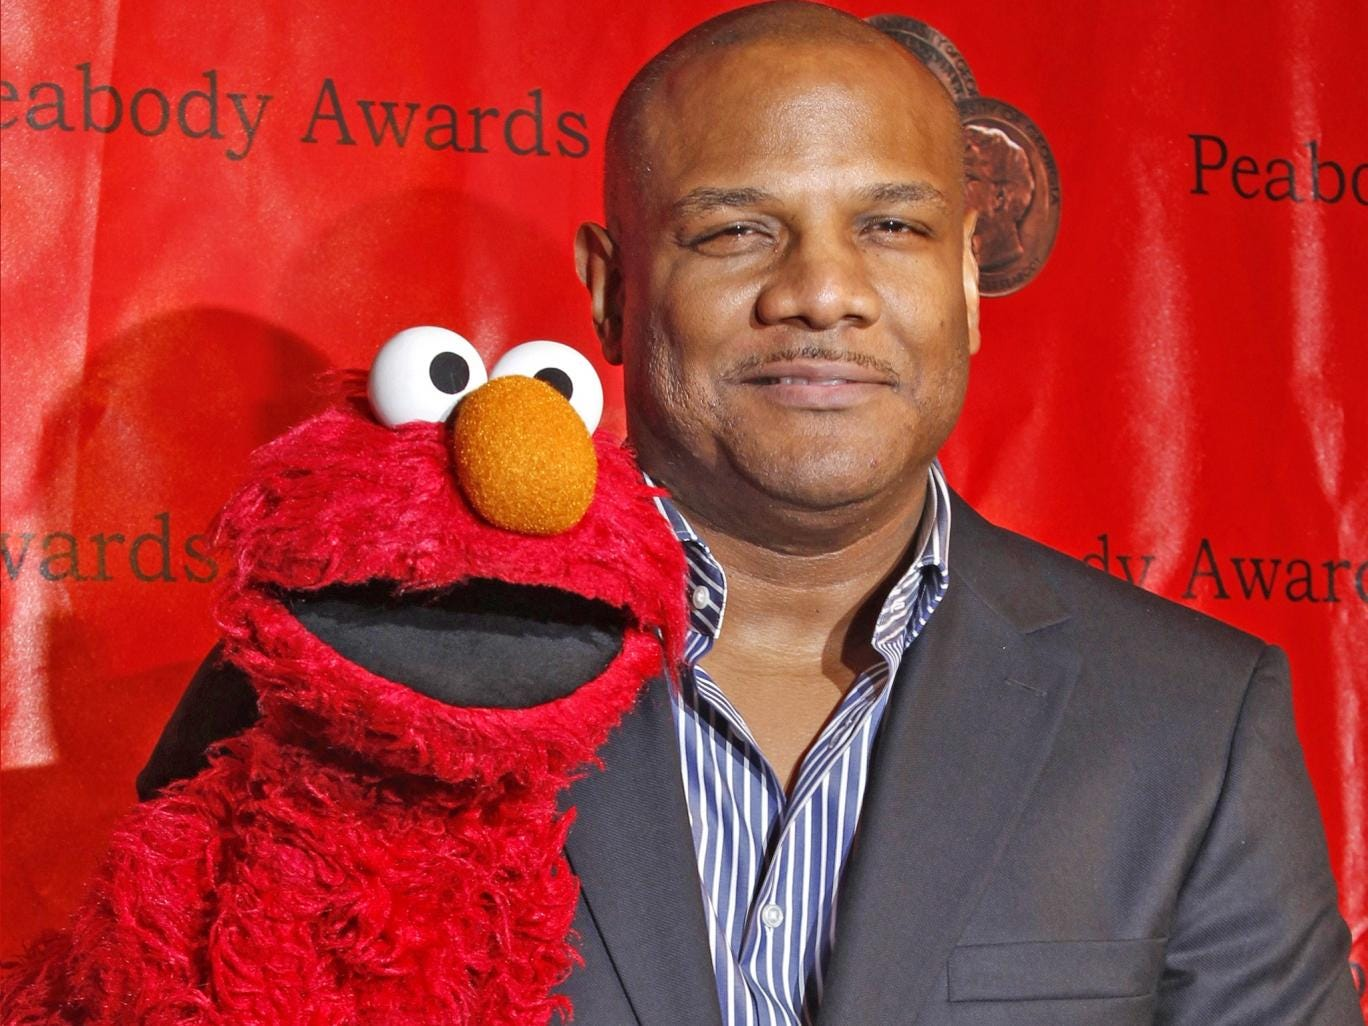 Kevin Clash, the voice of Elmo in the hit show Sesame Street